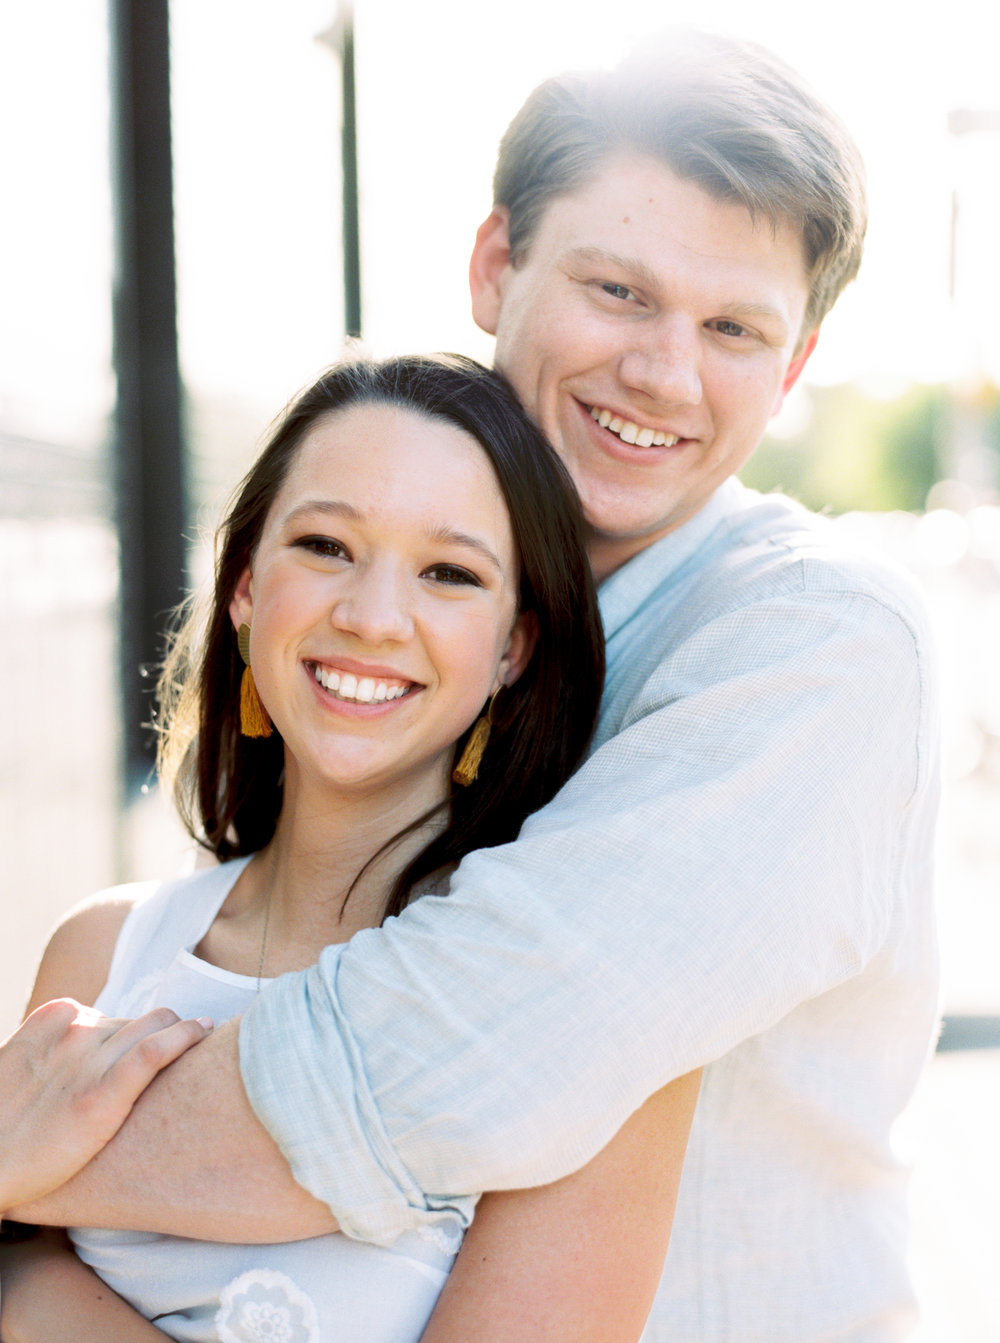 Engagement Photos - By Brittany Jean Photography